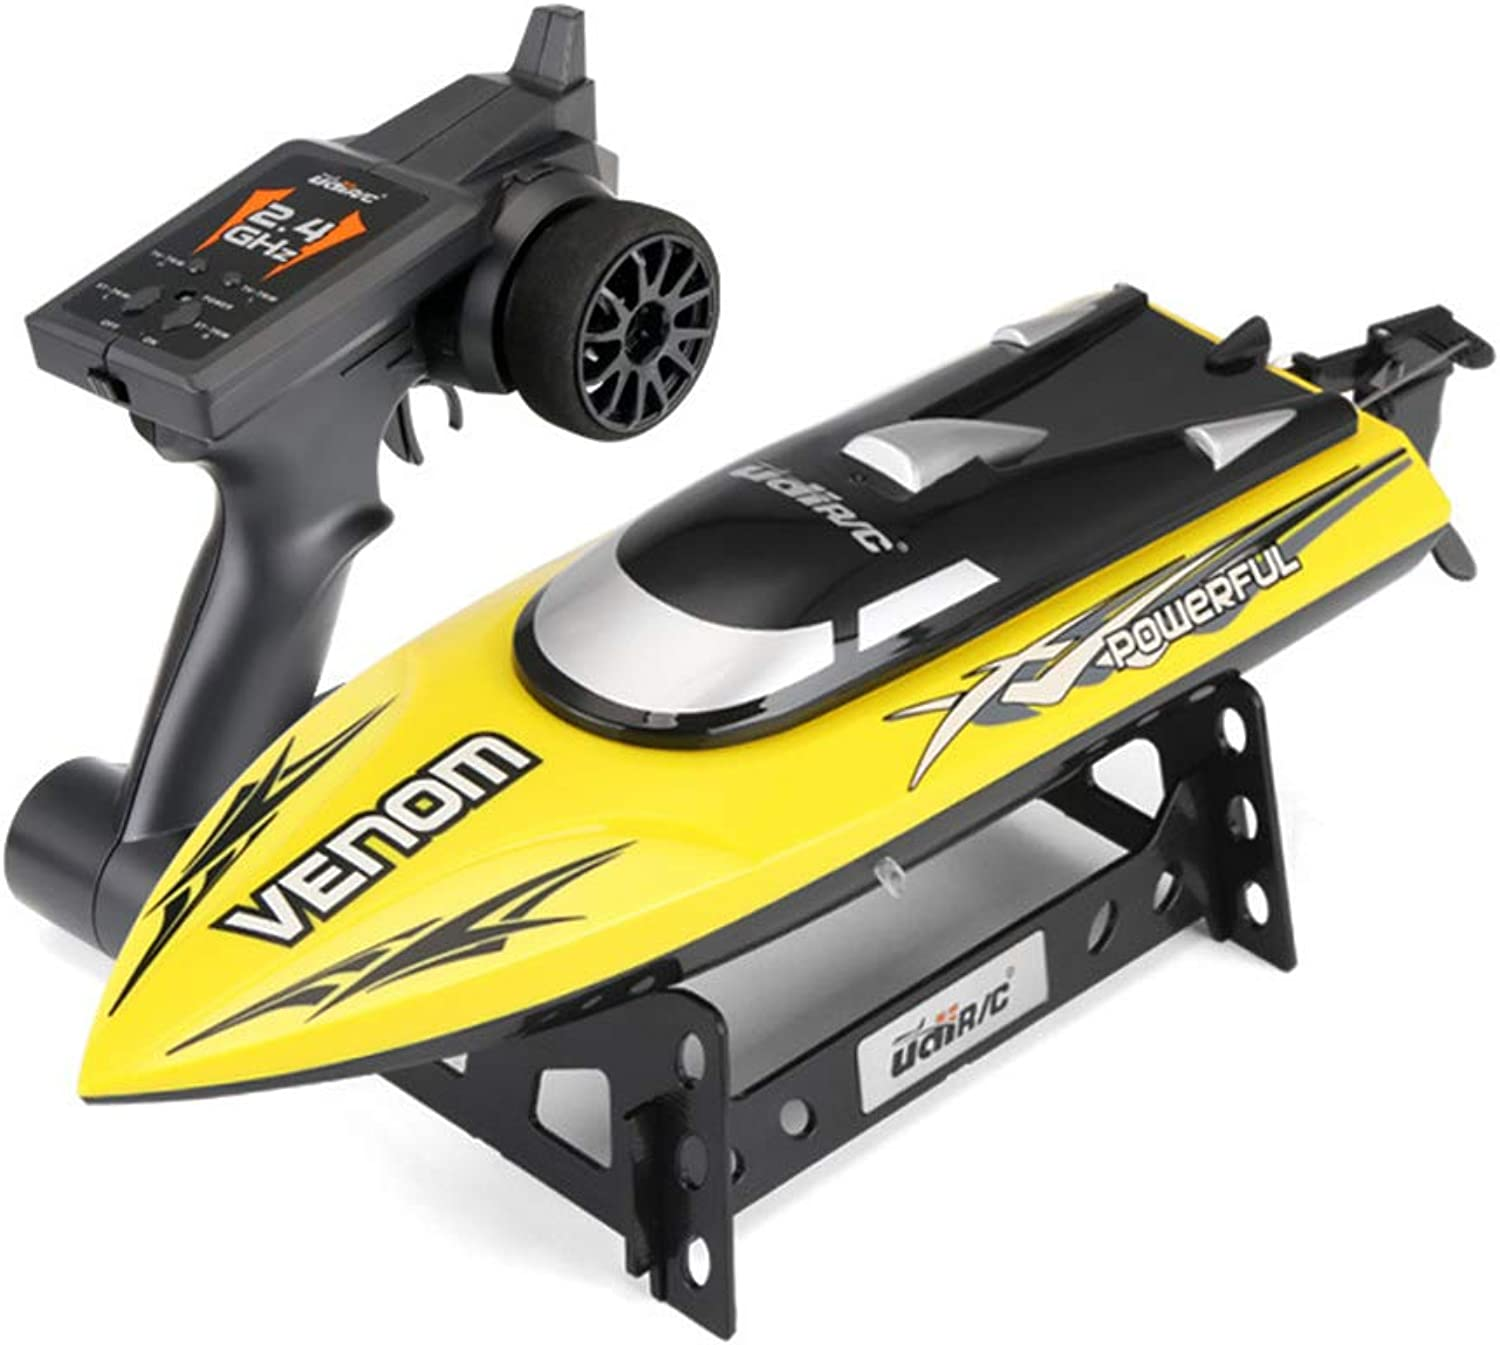 Ledu Mini remote control boat, 2.4G speedboat water toy nautical model boy competition, charging, suitable for summer beach pond